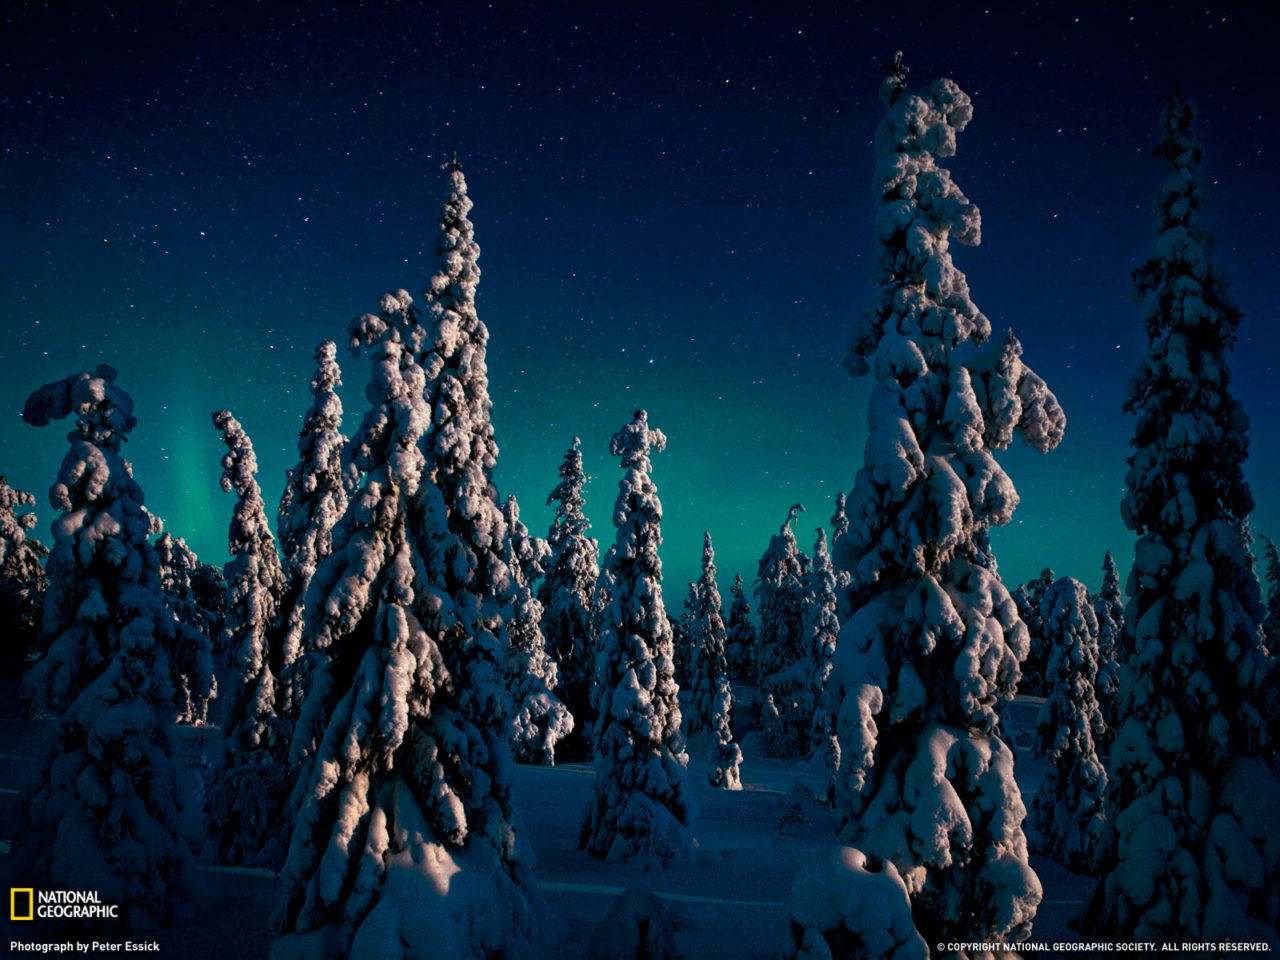 Aurora in Finland – Most Beautiful Picture of the Day: May 5, 2017 – Most Beautiful Picture